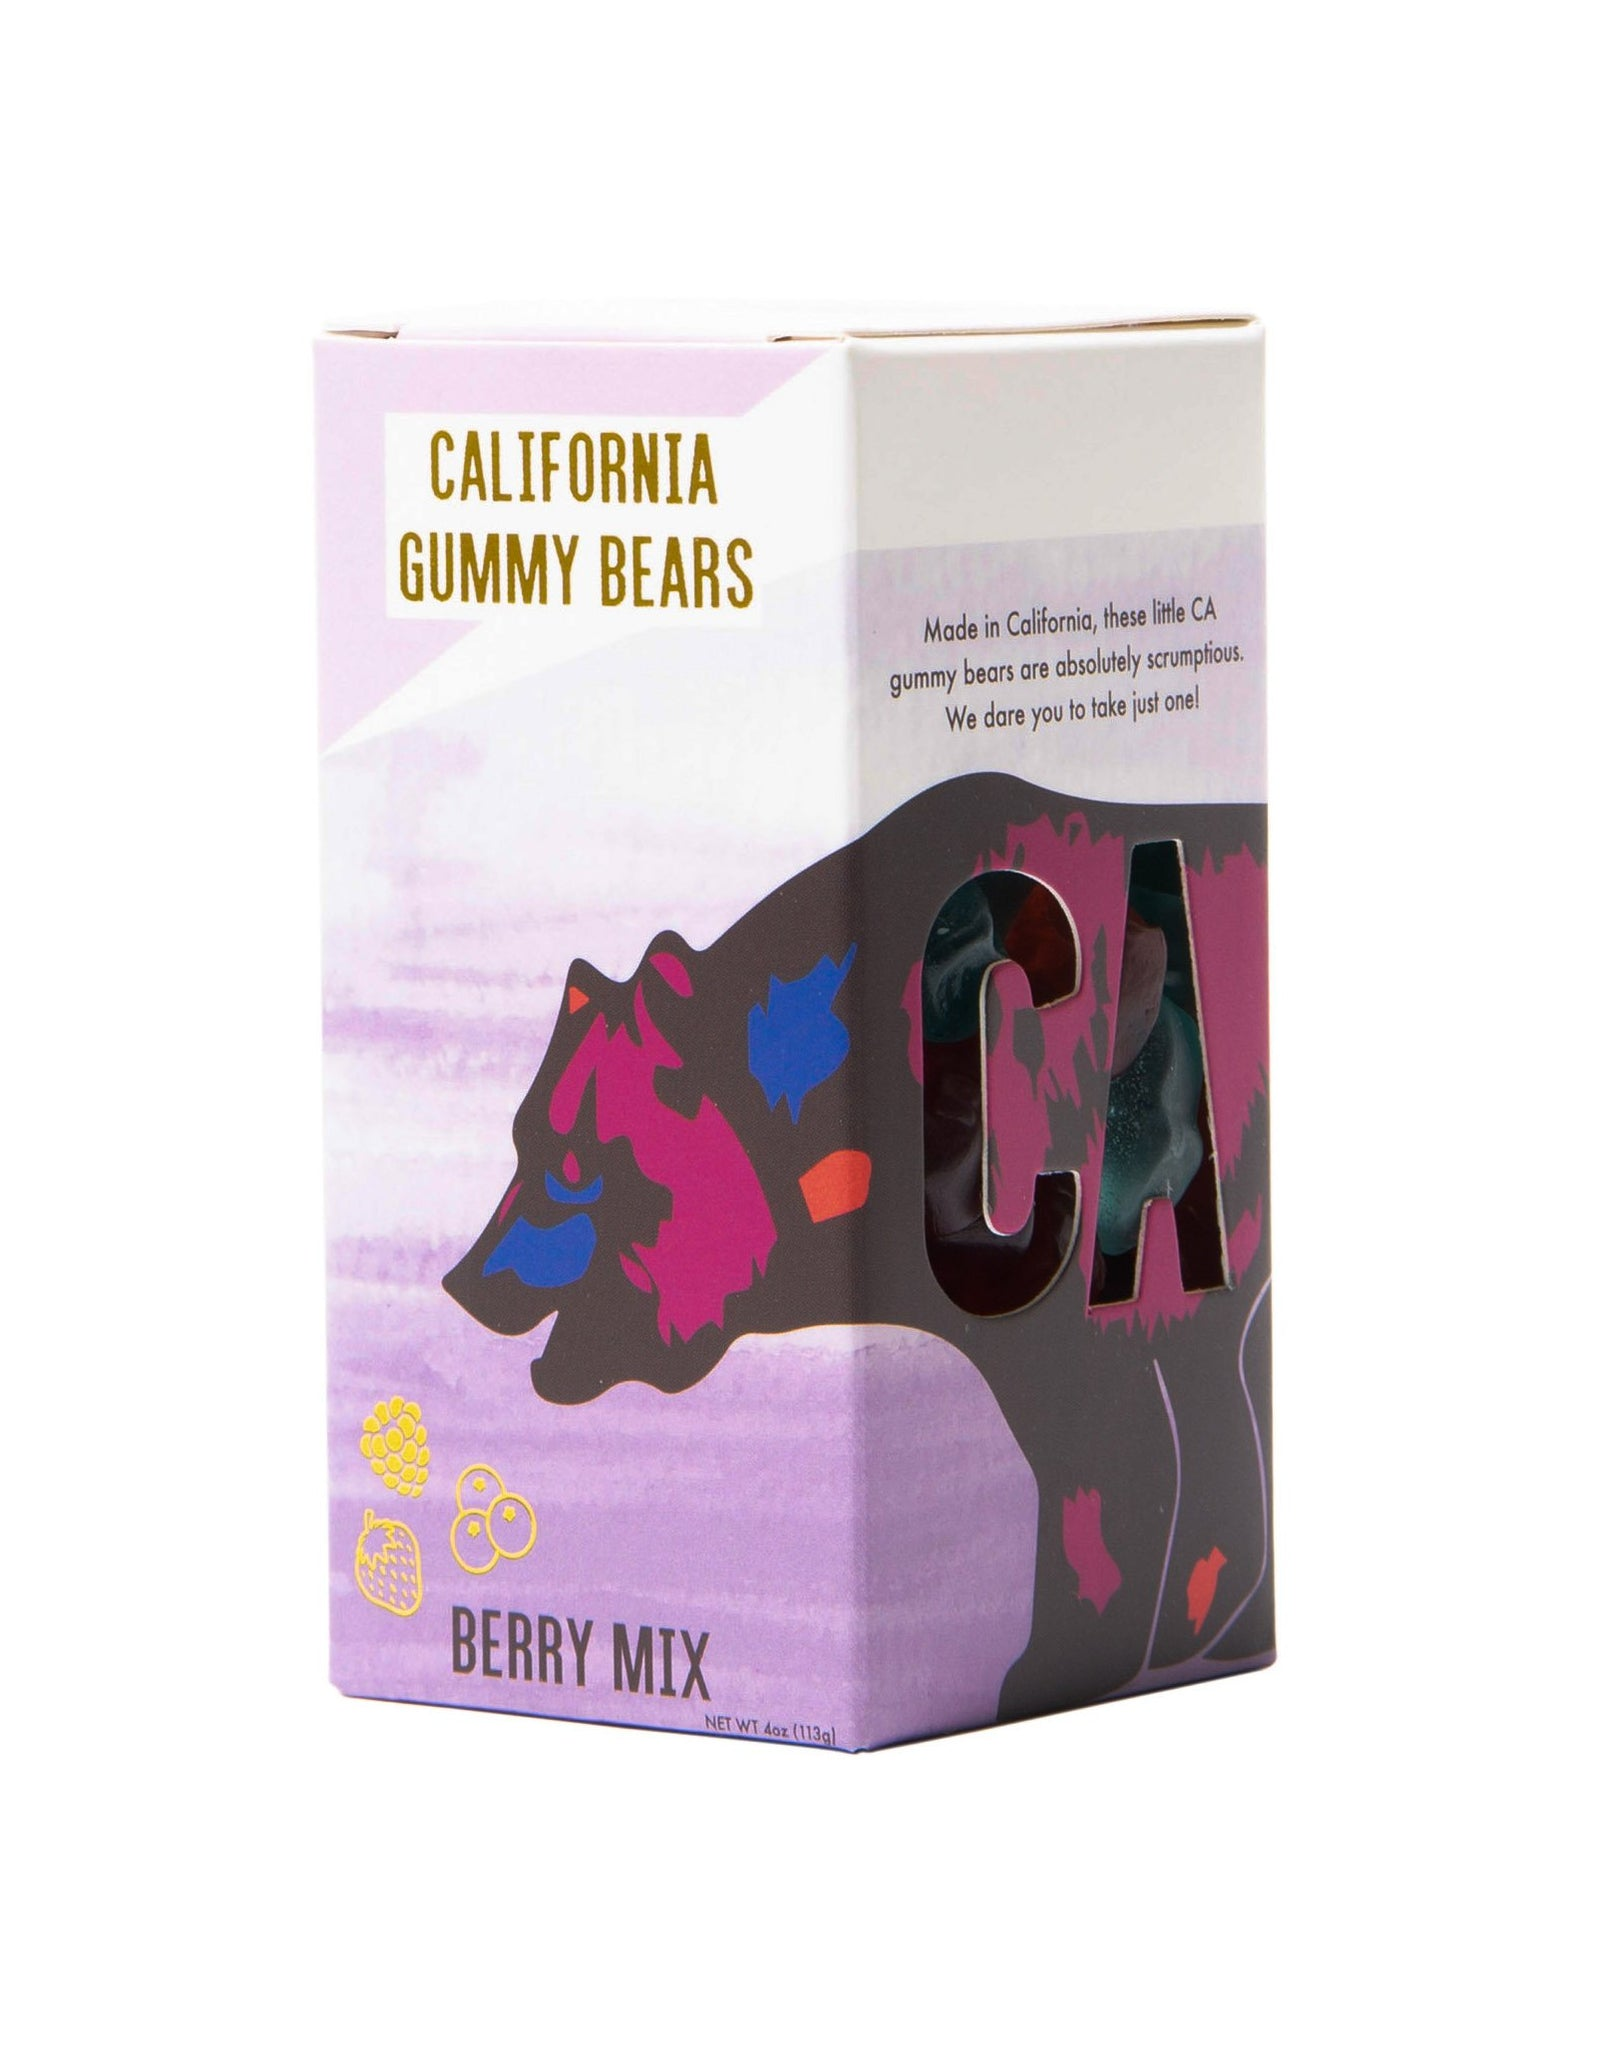 BERRY MIX - California Gummy Bears